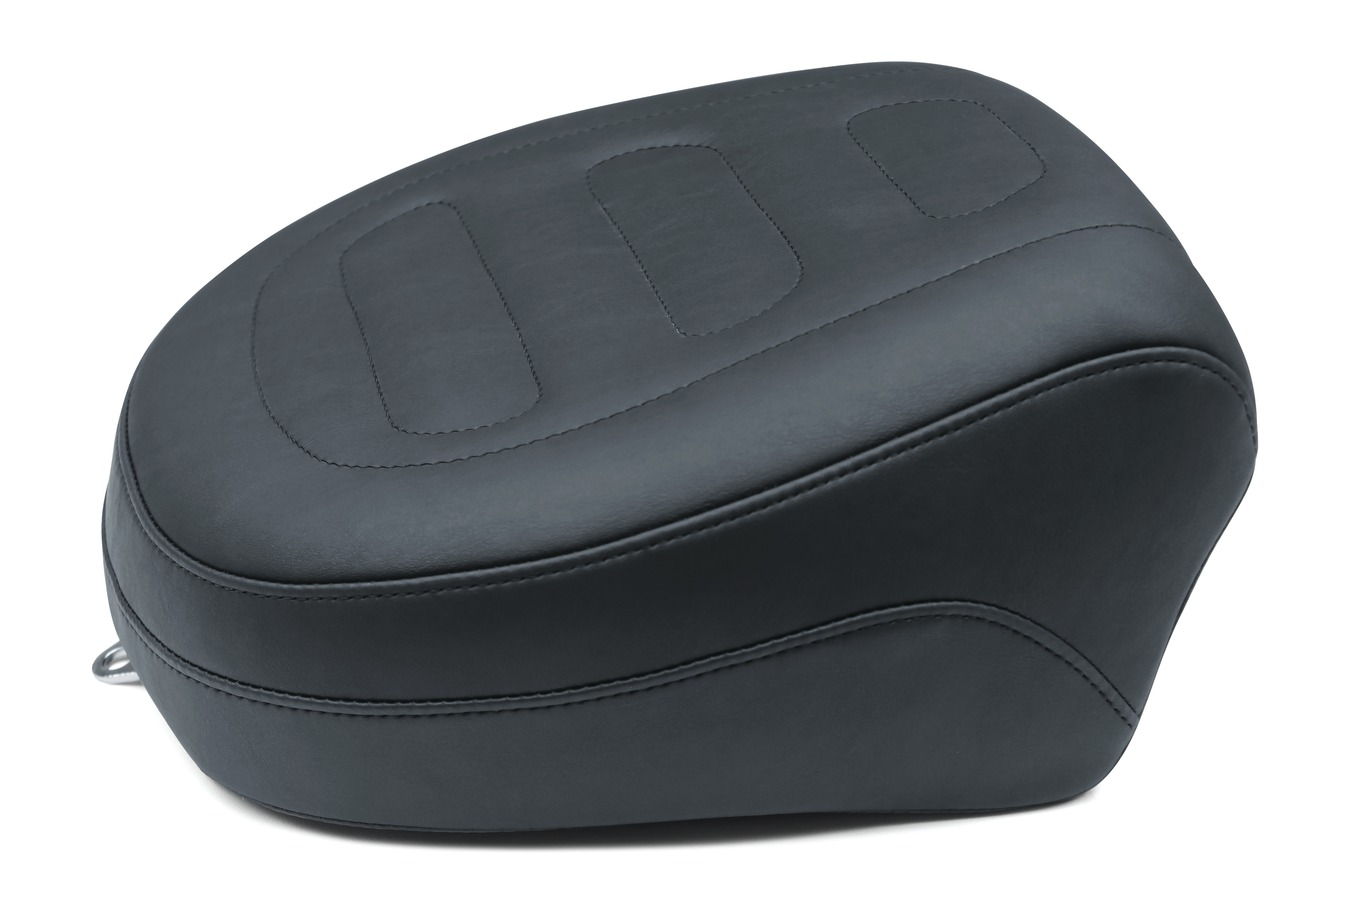 Standard Touring Passenger Seat for Harley-Davidson Softail Breakout 2013-